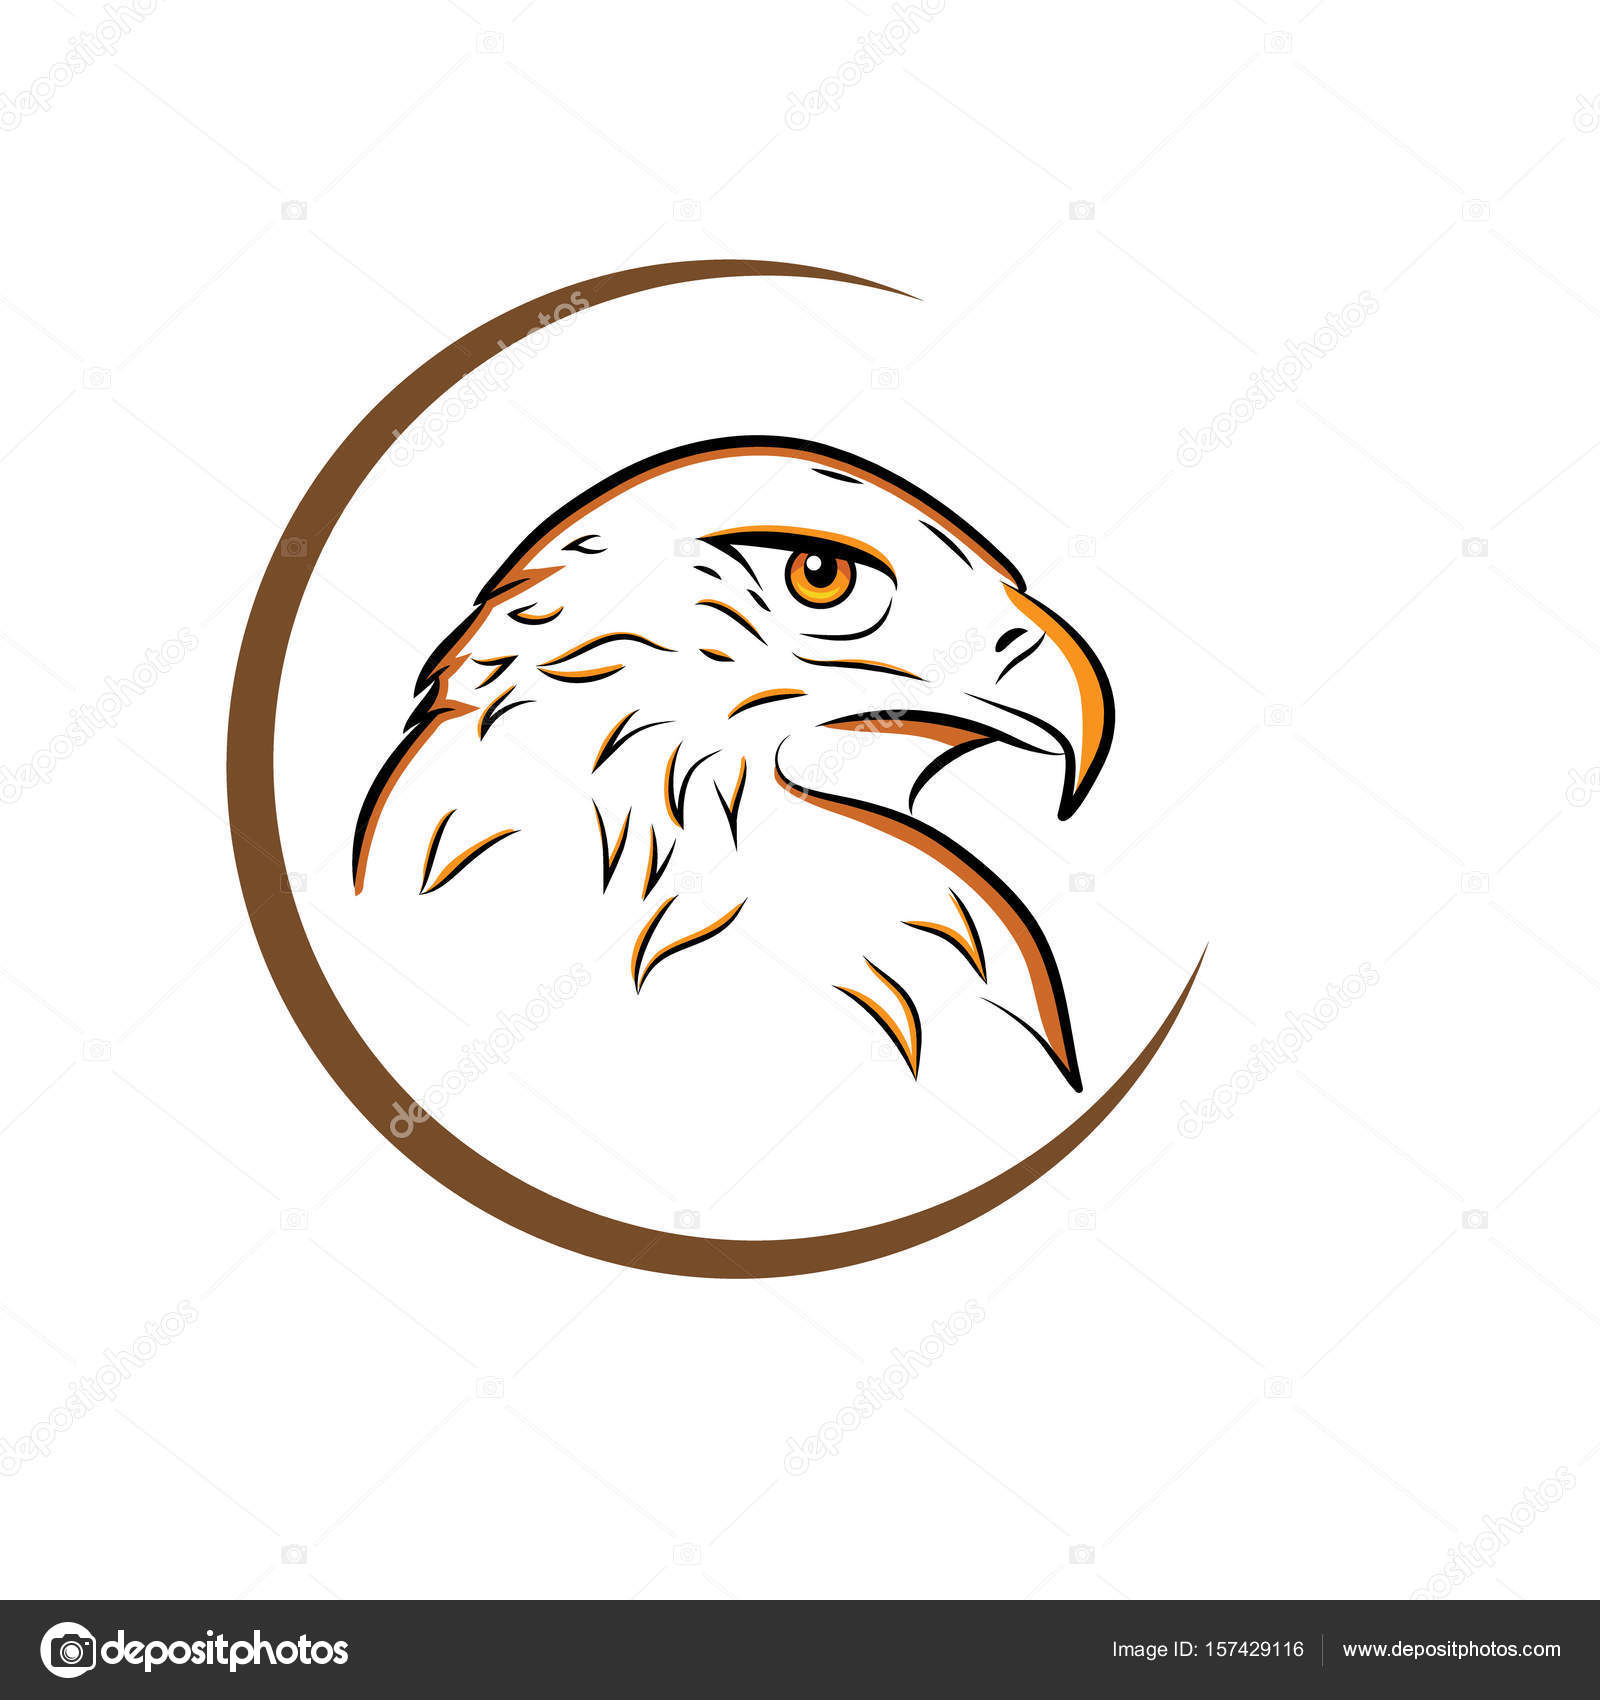 Outline of an eagle | Eagle head outline vector illustration